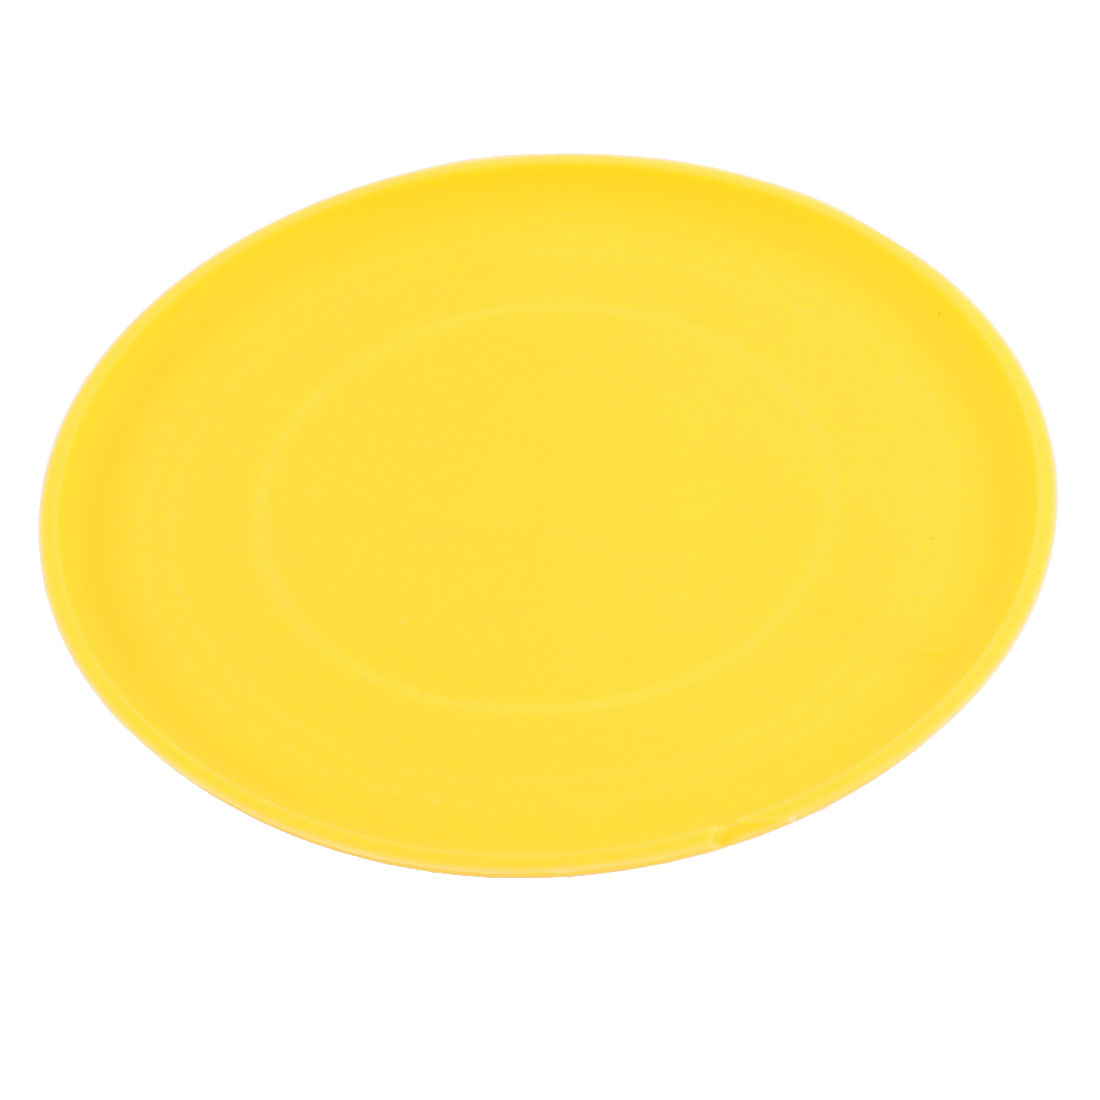 Pet Dog Puppy Training Flying Saucer Frisbee Toy Dish Plate Yellow